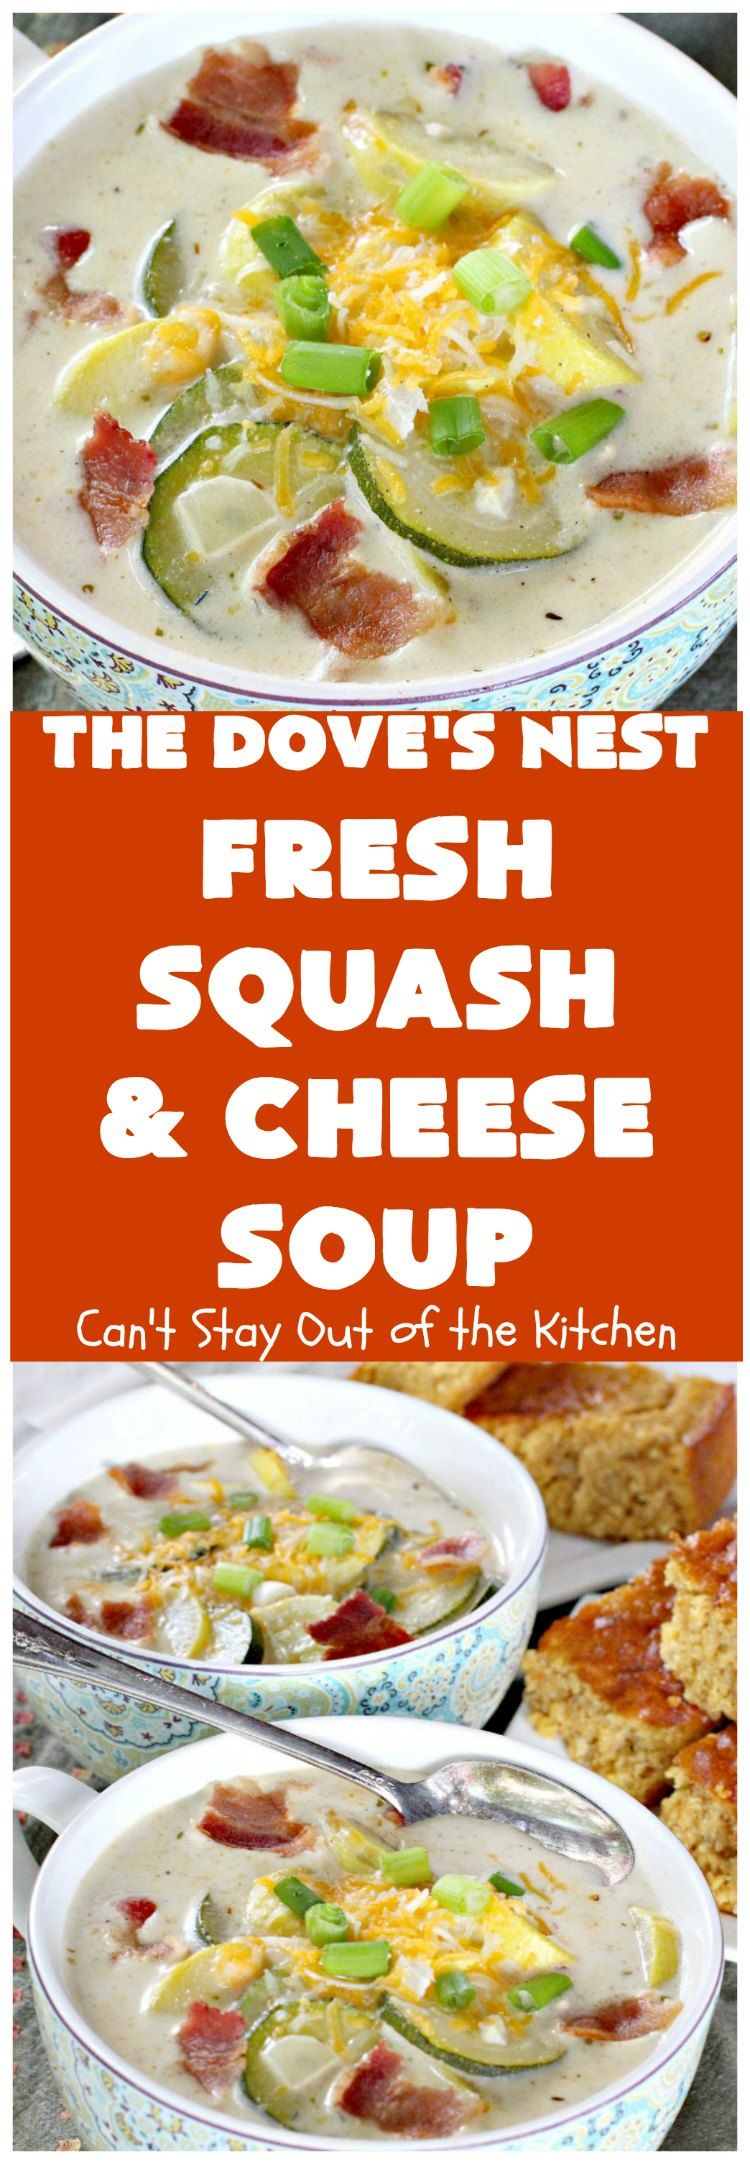 The Dove's Nest Fresh Squash & Cheese Soup | Can't…